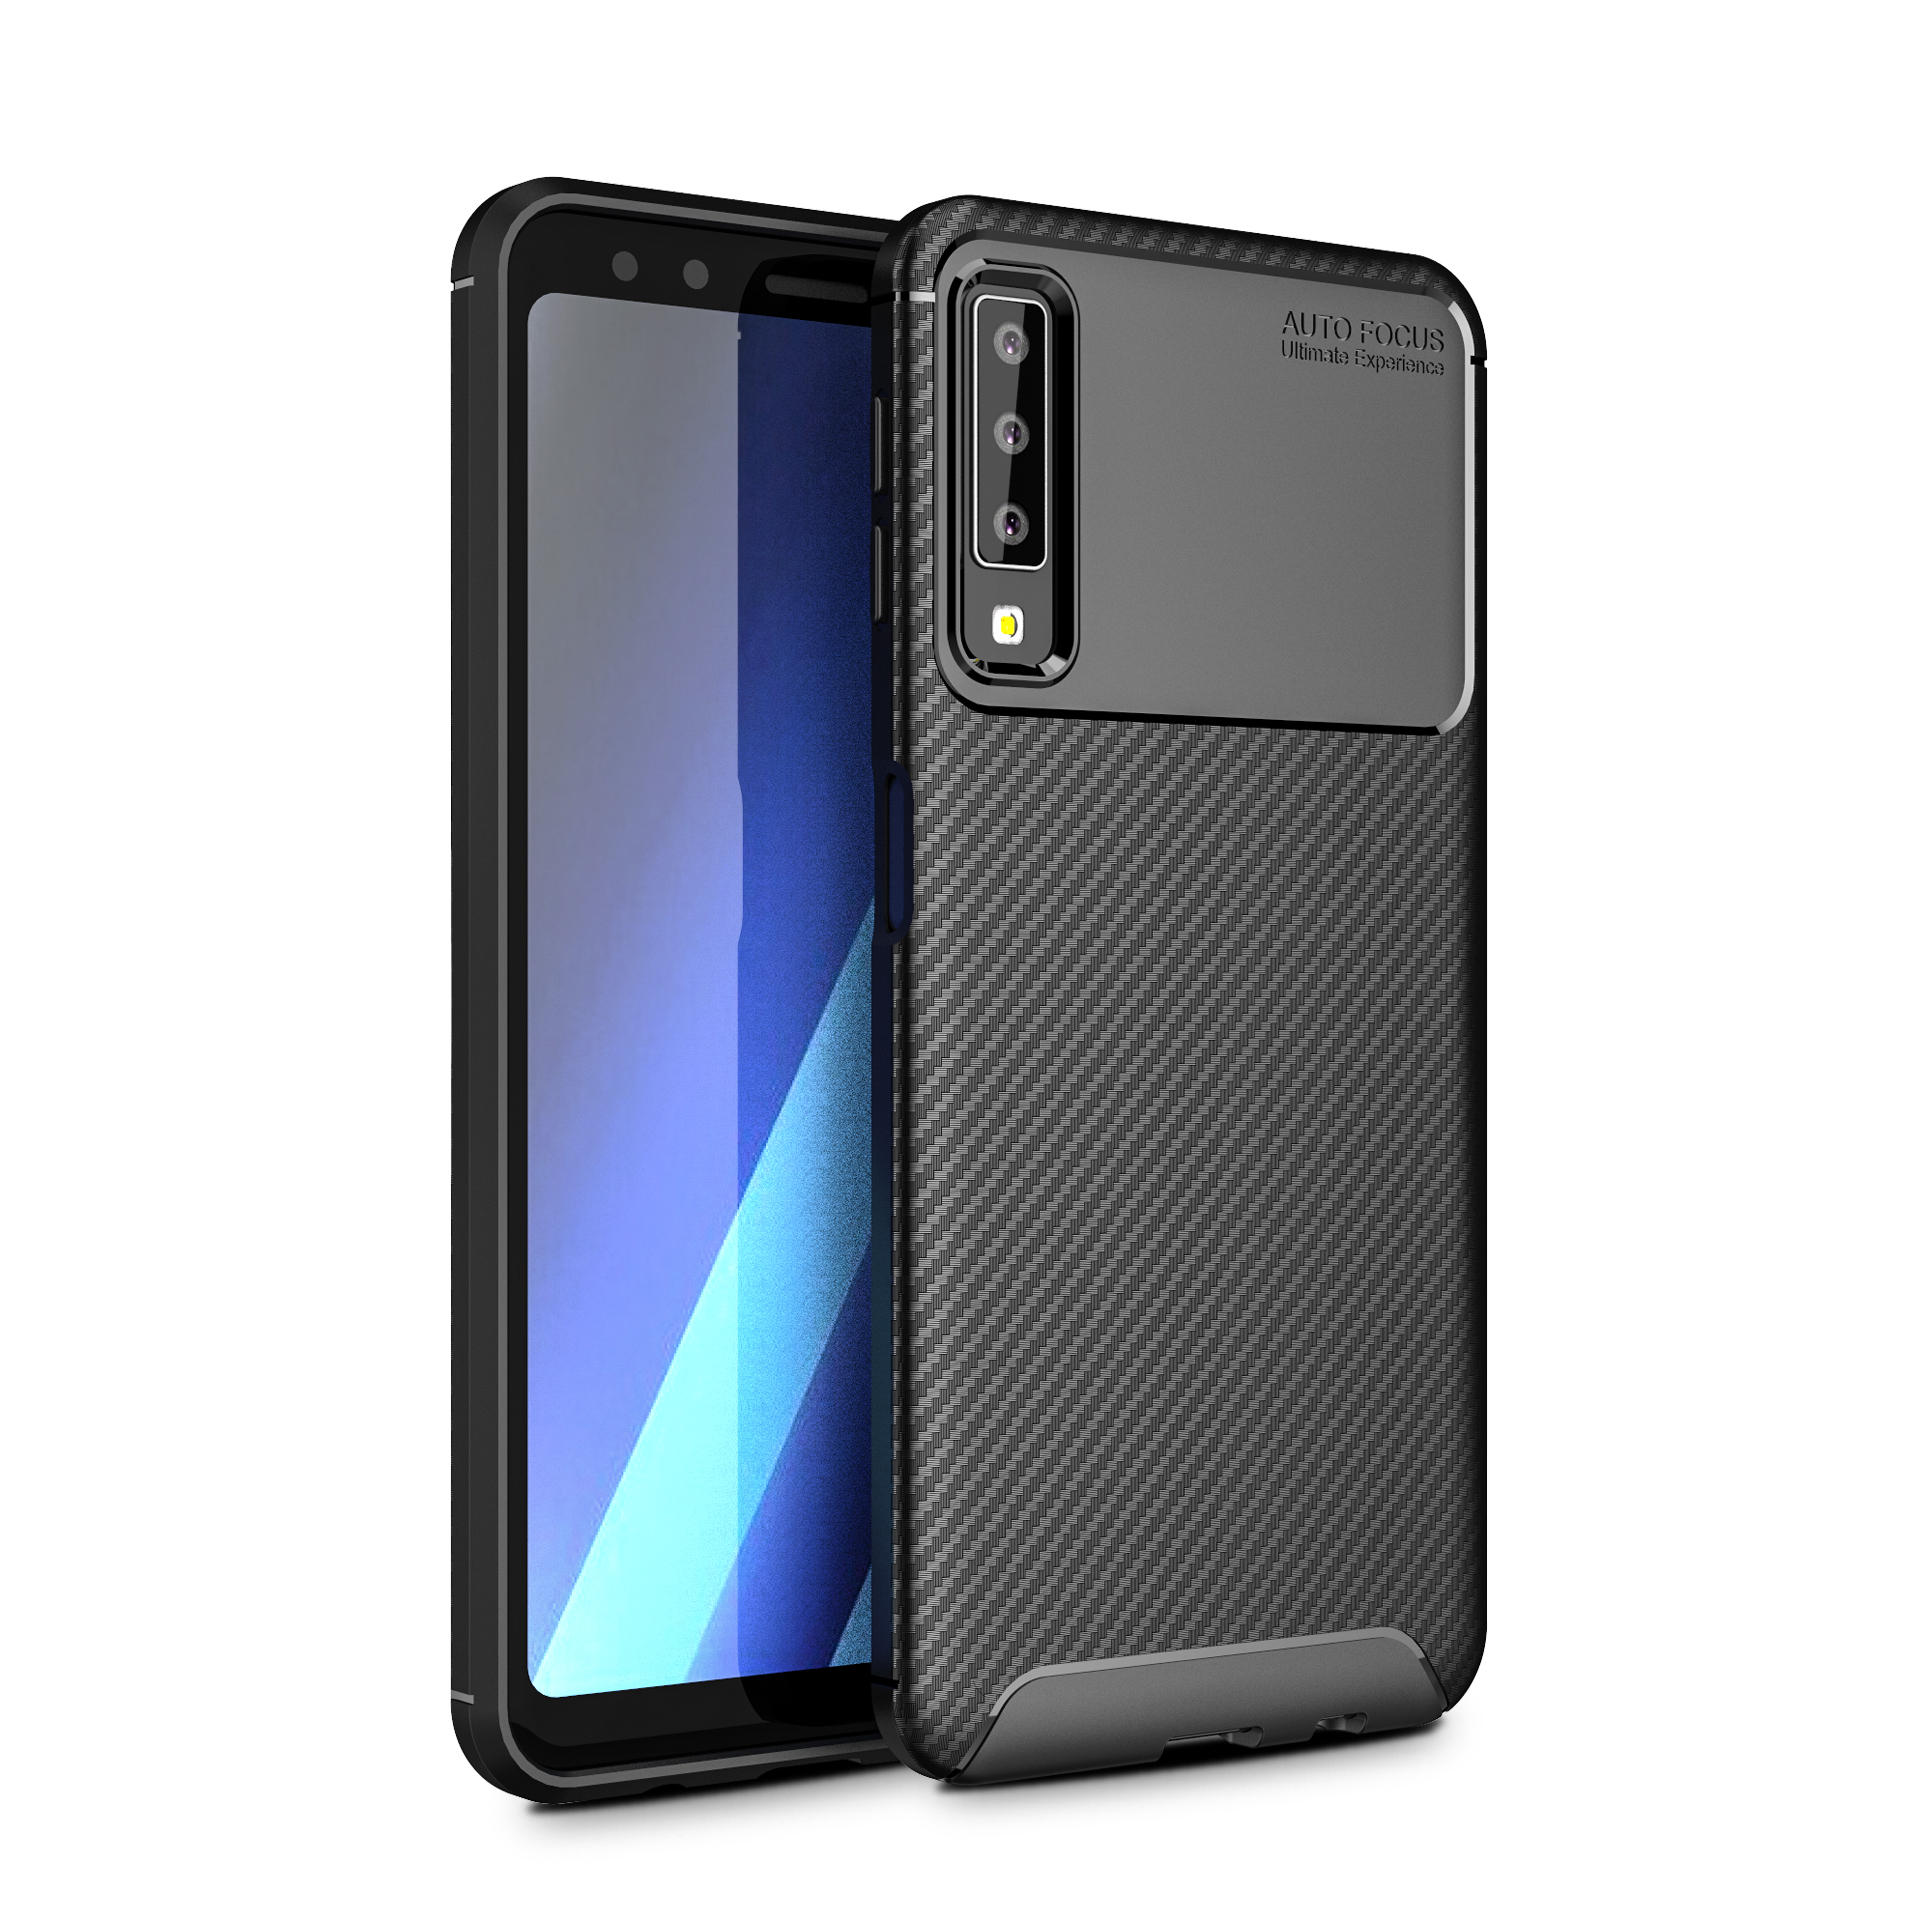 finest selection 1b4aa f81f7 Bakeey Protective Case For Samsung Galaxy A7 2018 Carbon Fiber Fingerprint  Resistant Soft TPU Back Cover